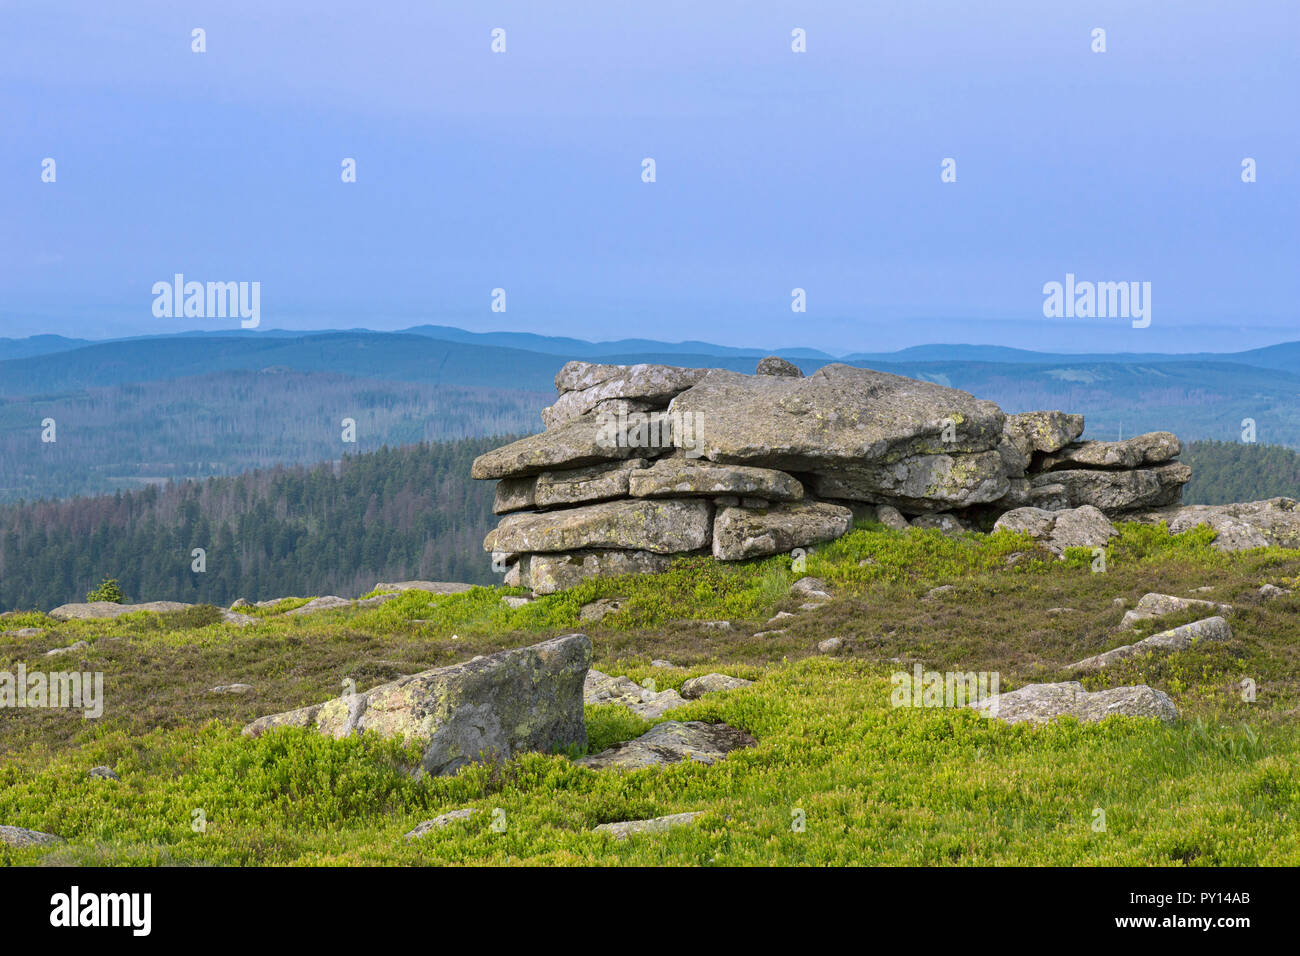 Hexenaltar / Witches' Altar, rock formation on the mountain Brocken, Harz National Park, Saxony-Anhalt, Germany - Stock Image